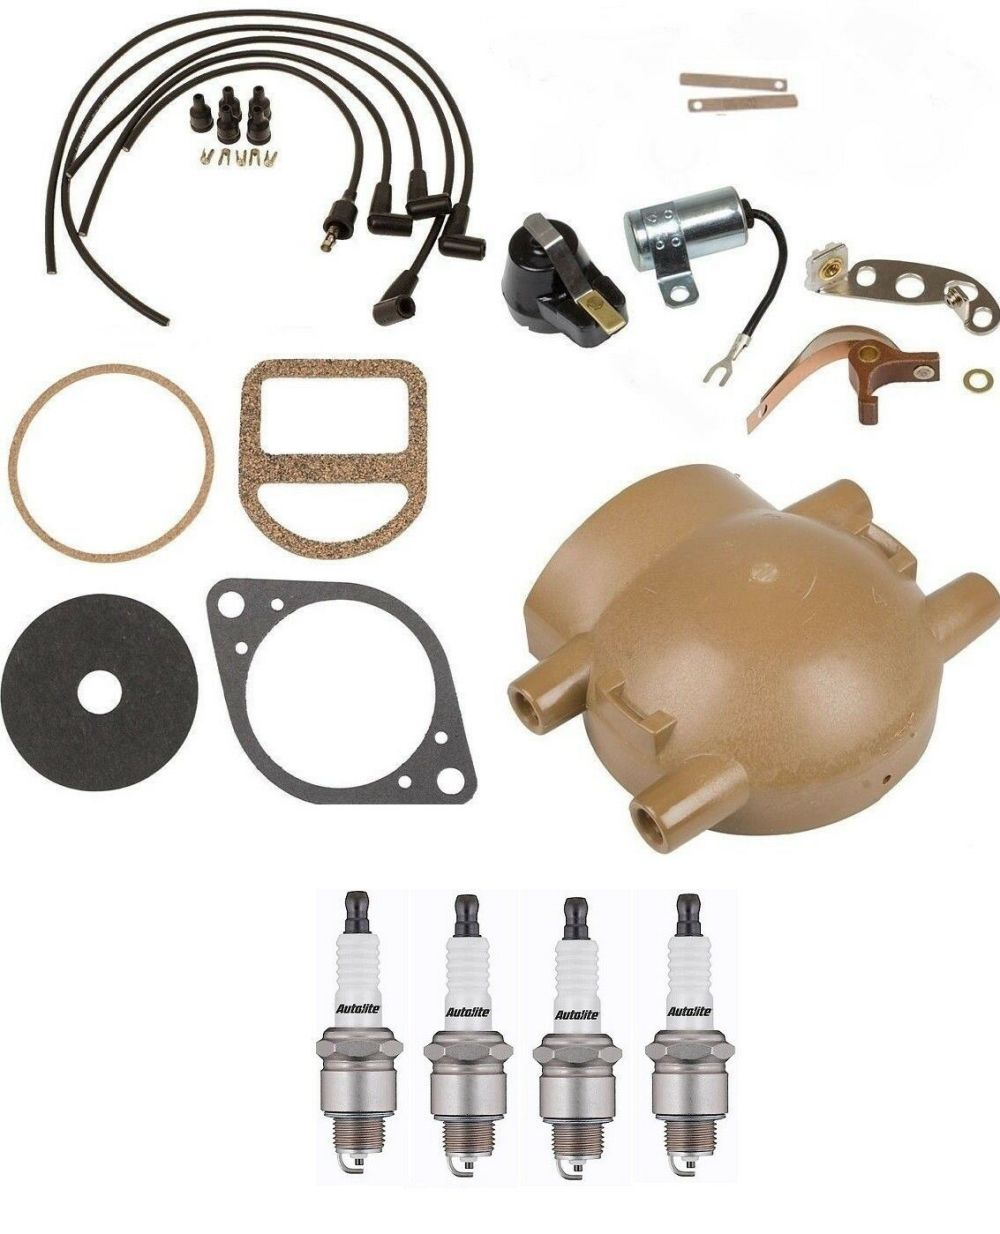 medium resolution of complete tune up kit for ford 9n 2n 8n tractors with front mount distributor for sale online ebay